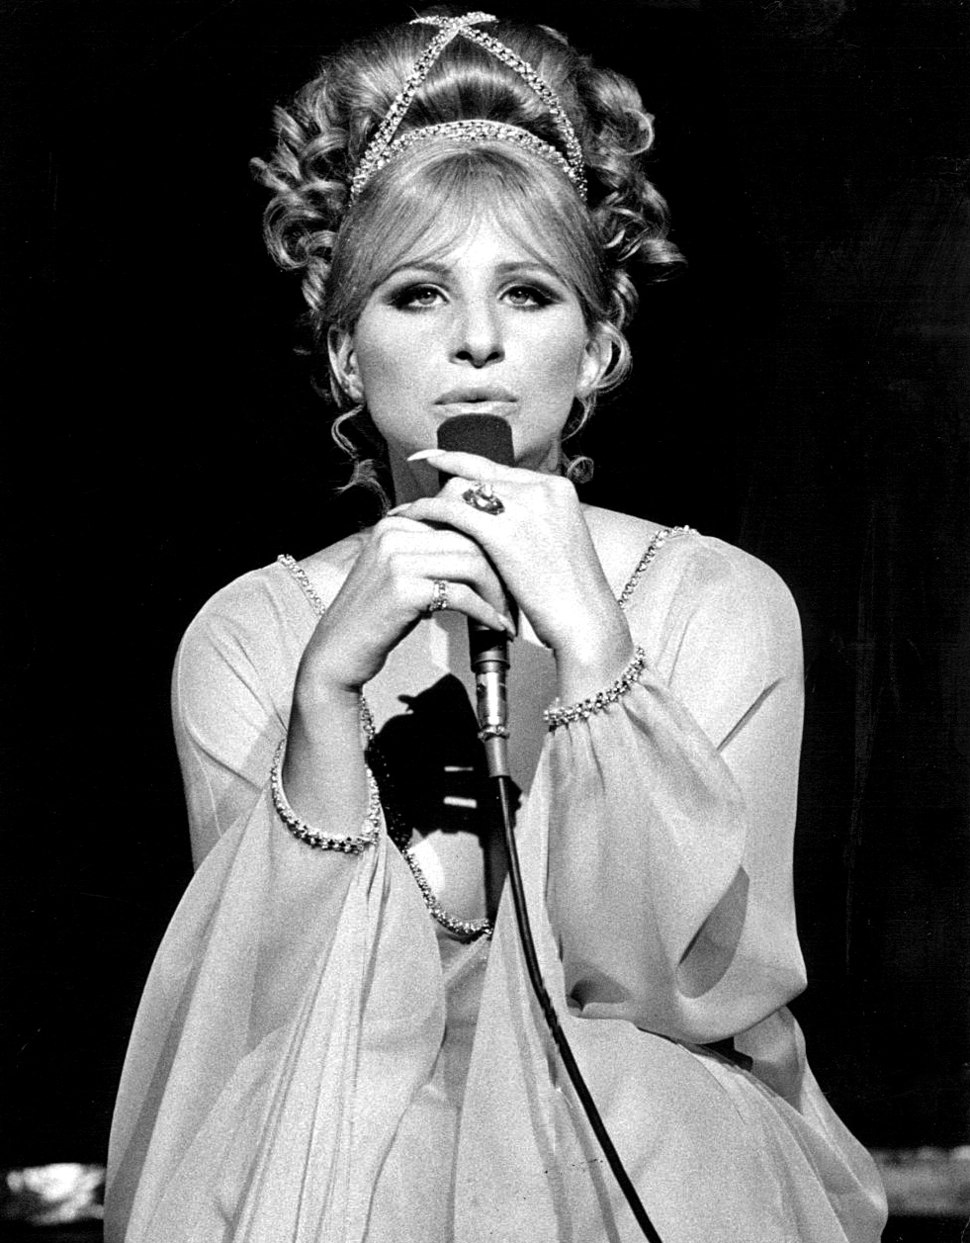 Barbra Streisand singing- 1969